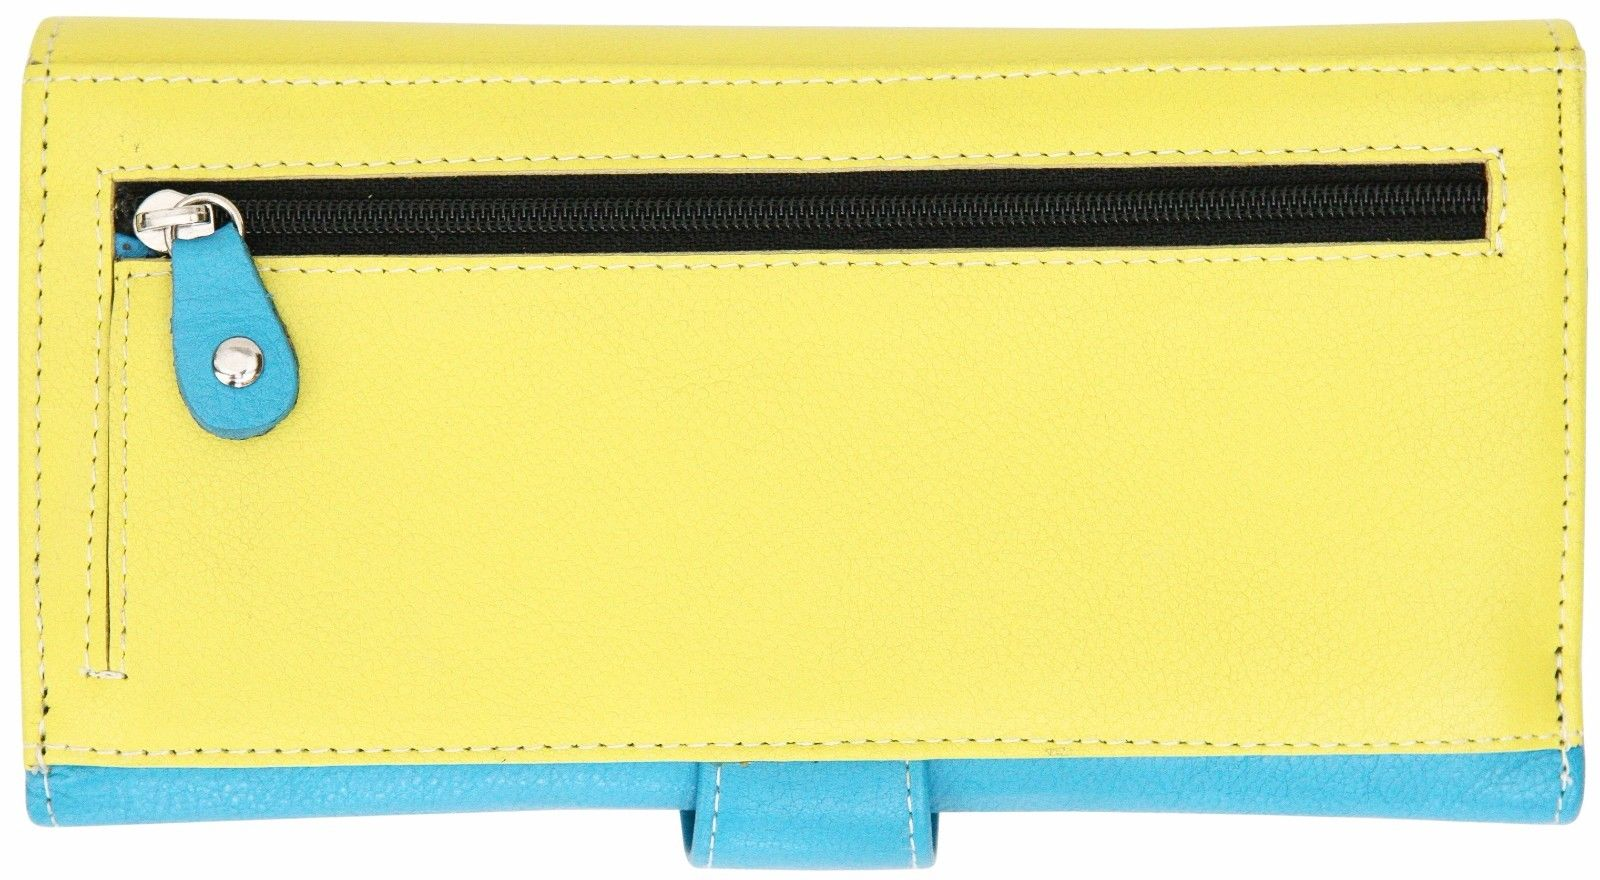 Felda-RFID-Ladies-Leather-Soft-Wallet-Large-Capacity-Purse-Womens-Multi-24-Card miniatuur 30